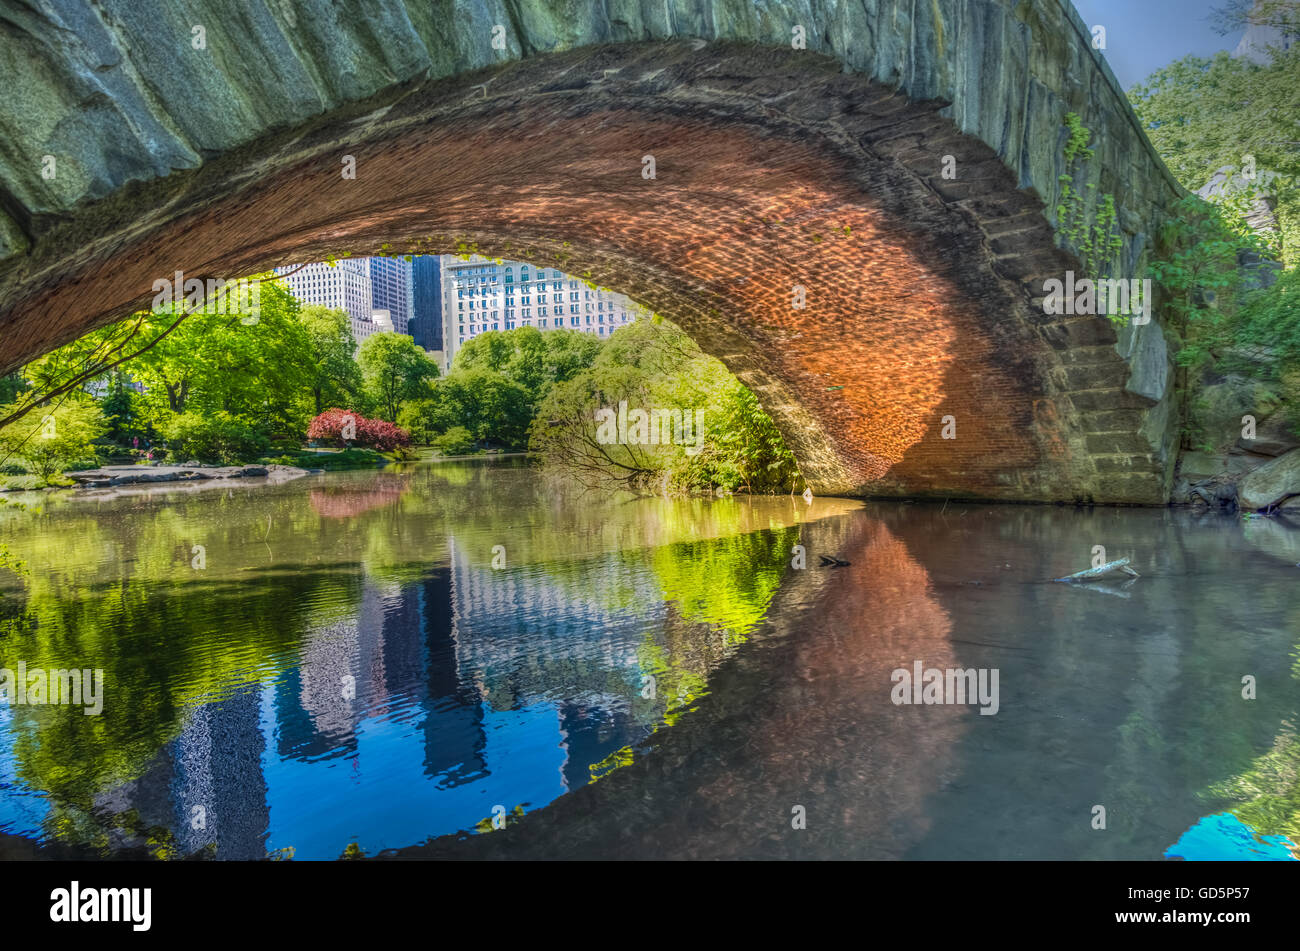 Gapstow Bridge arch reflected on the Central park pond, New York, NY - Stock Image